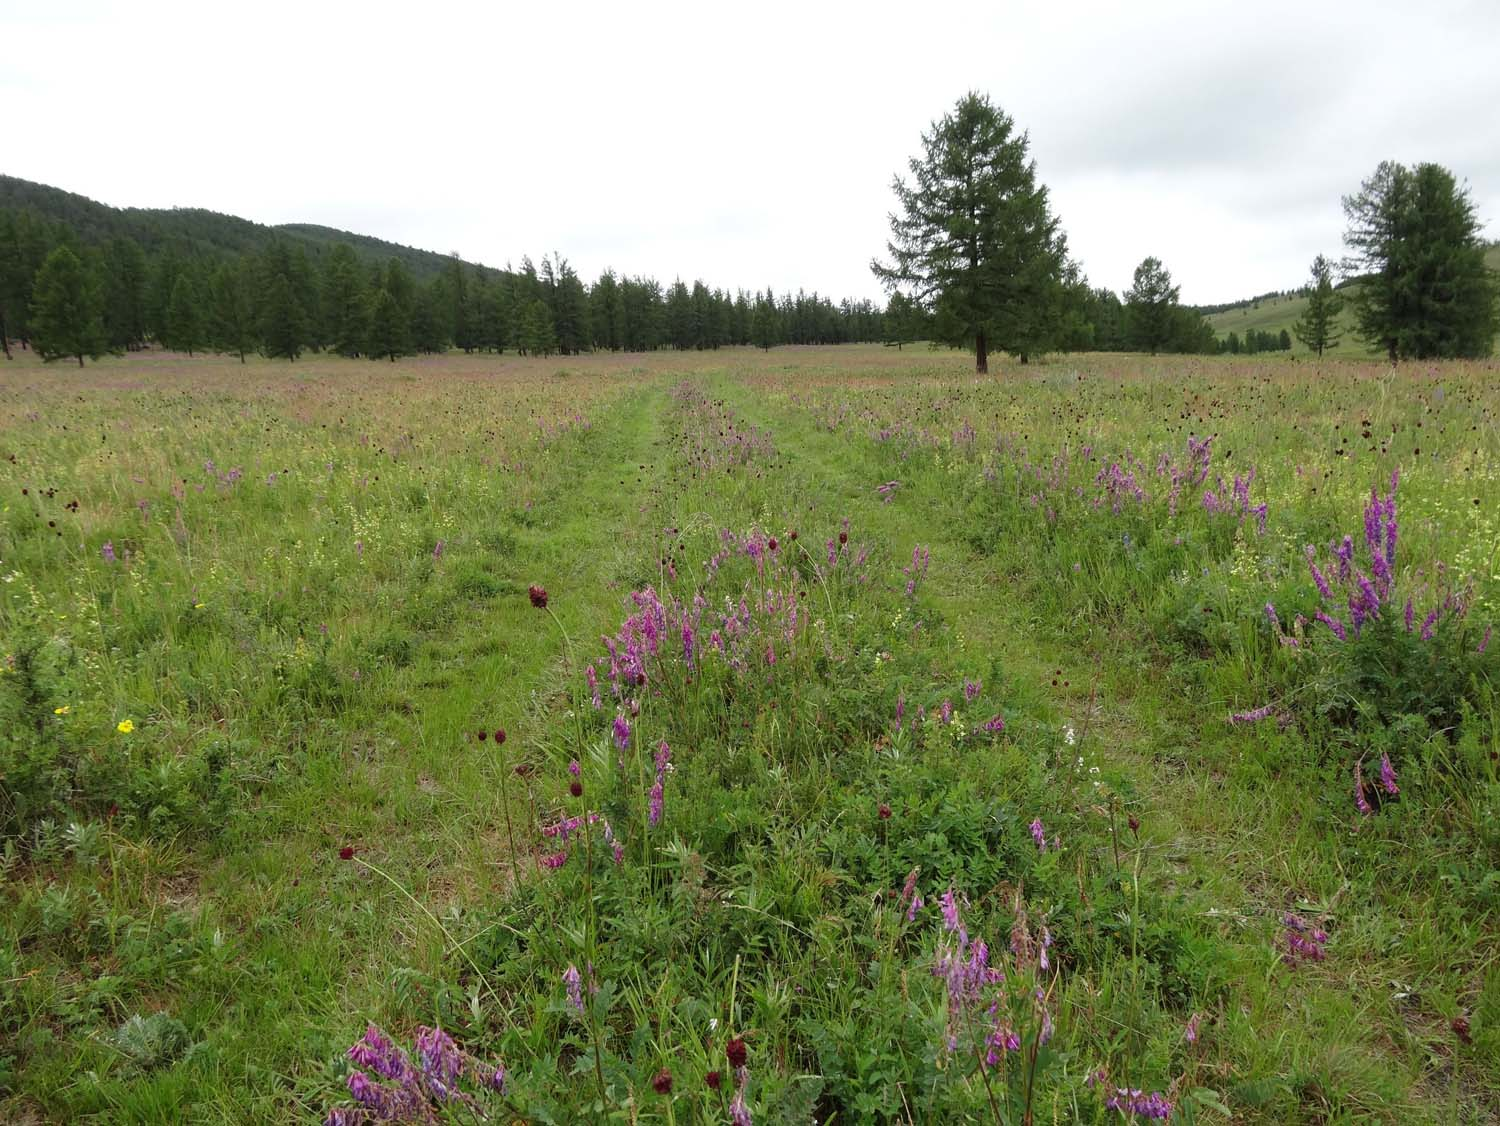 an amazing trail through beautiful wildflowers in a pine forest in the middle of nowhere